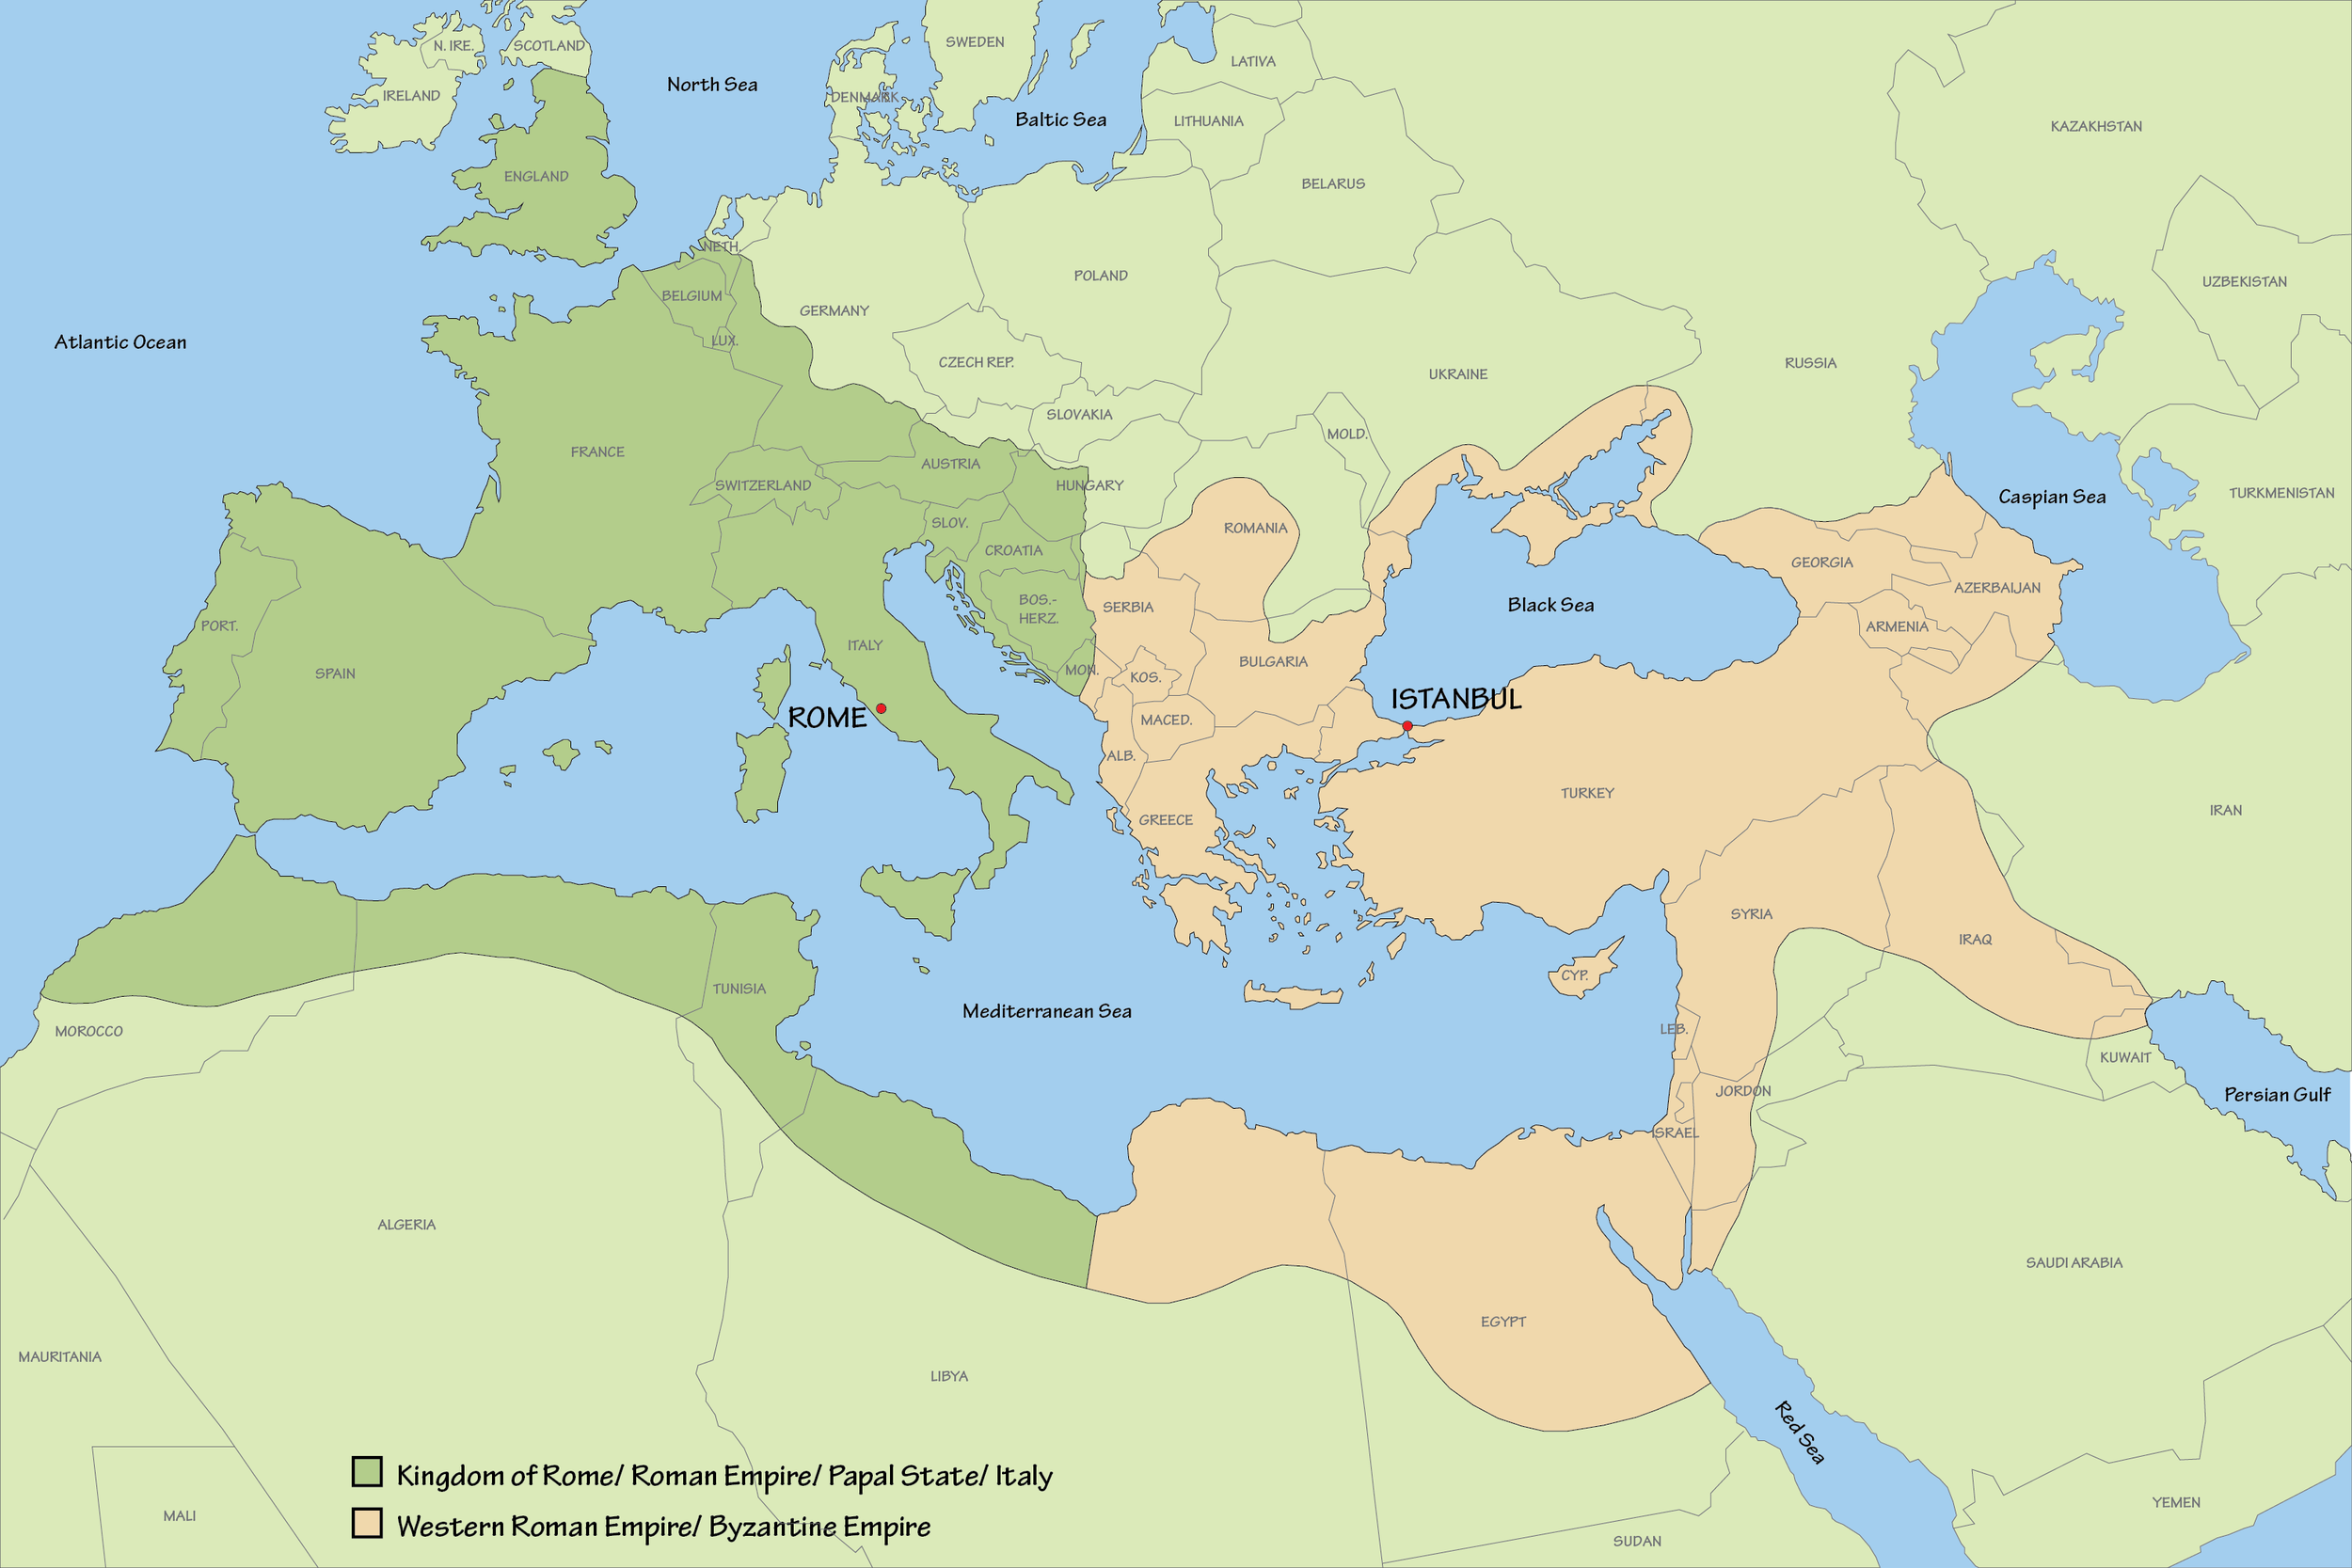 Exapnsion of Roman Empire Diagram_10-01.png